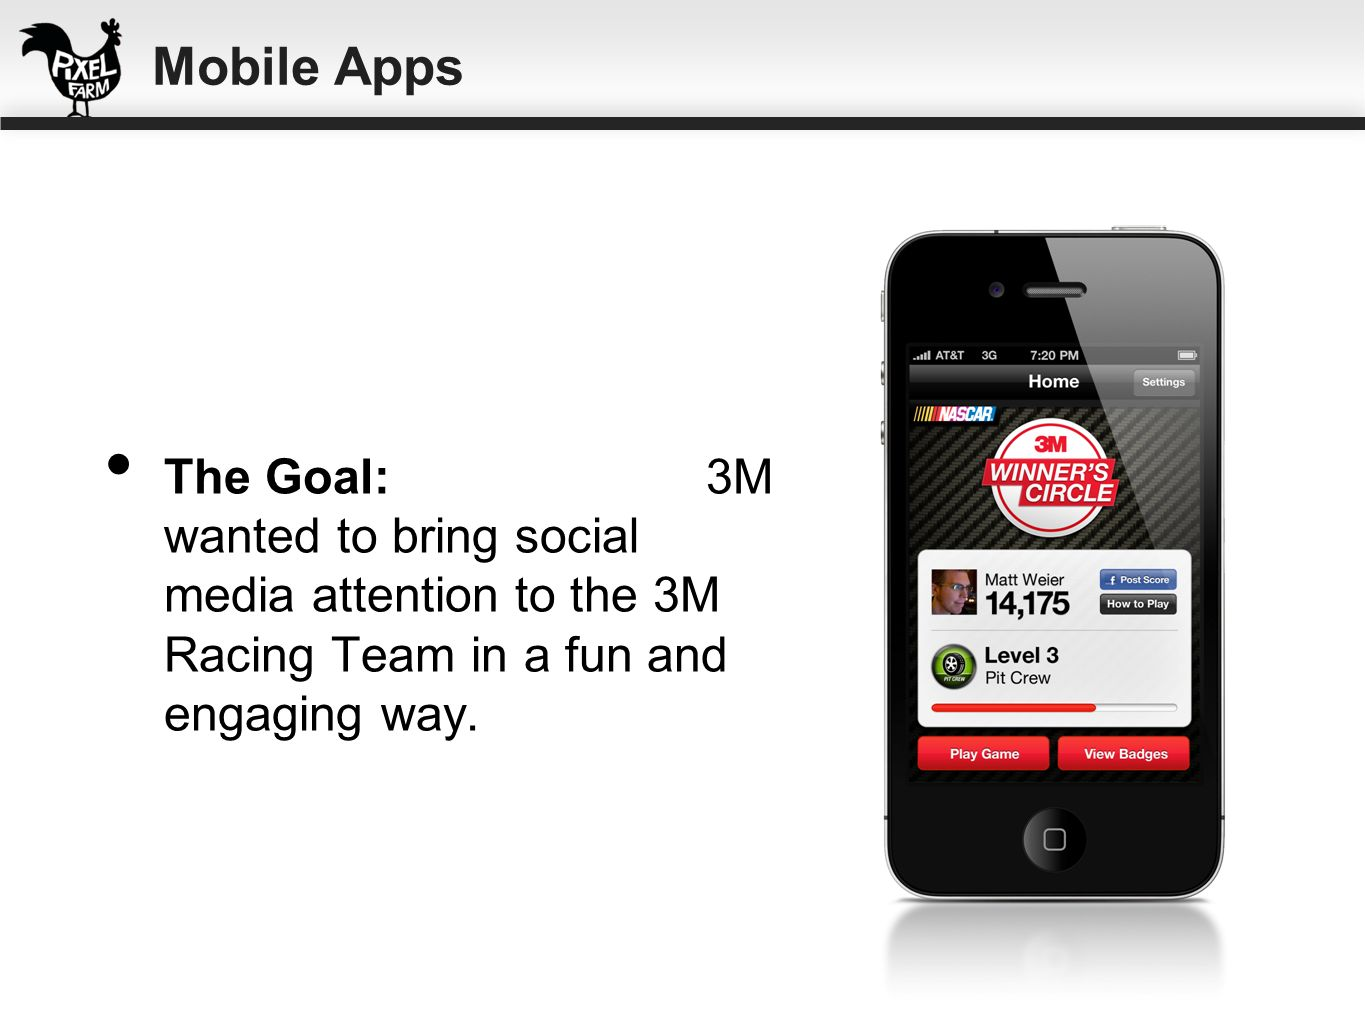 Mobile AppsThe Goal: 3M wanted to bring social media attention to the 3M Racing Team in a fun and engaging way.